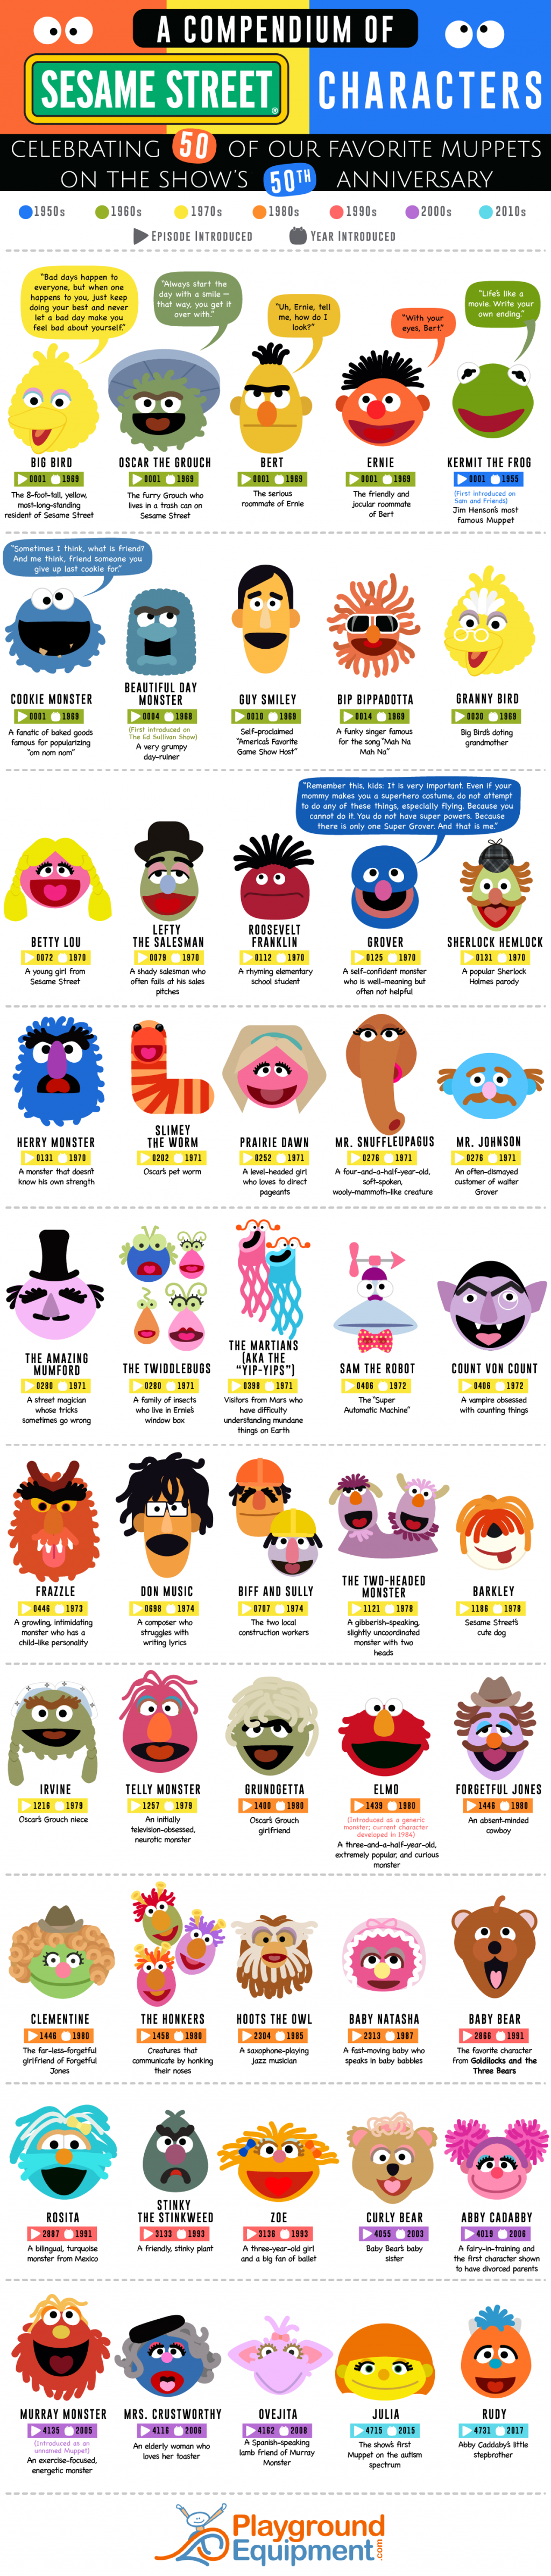 compendium-50-sesame-street-characters-8